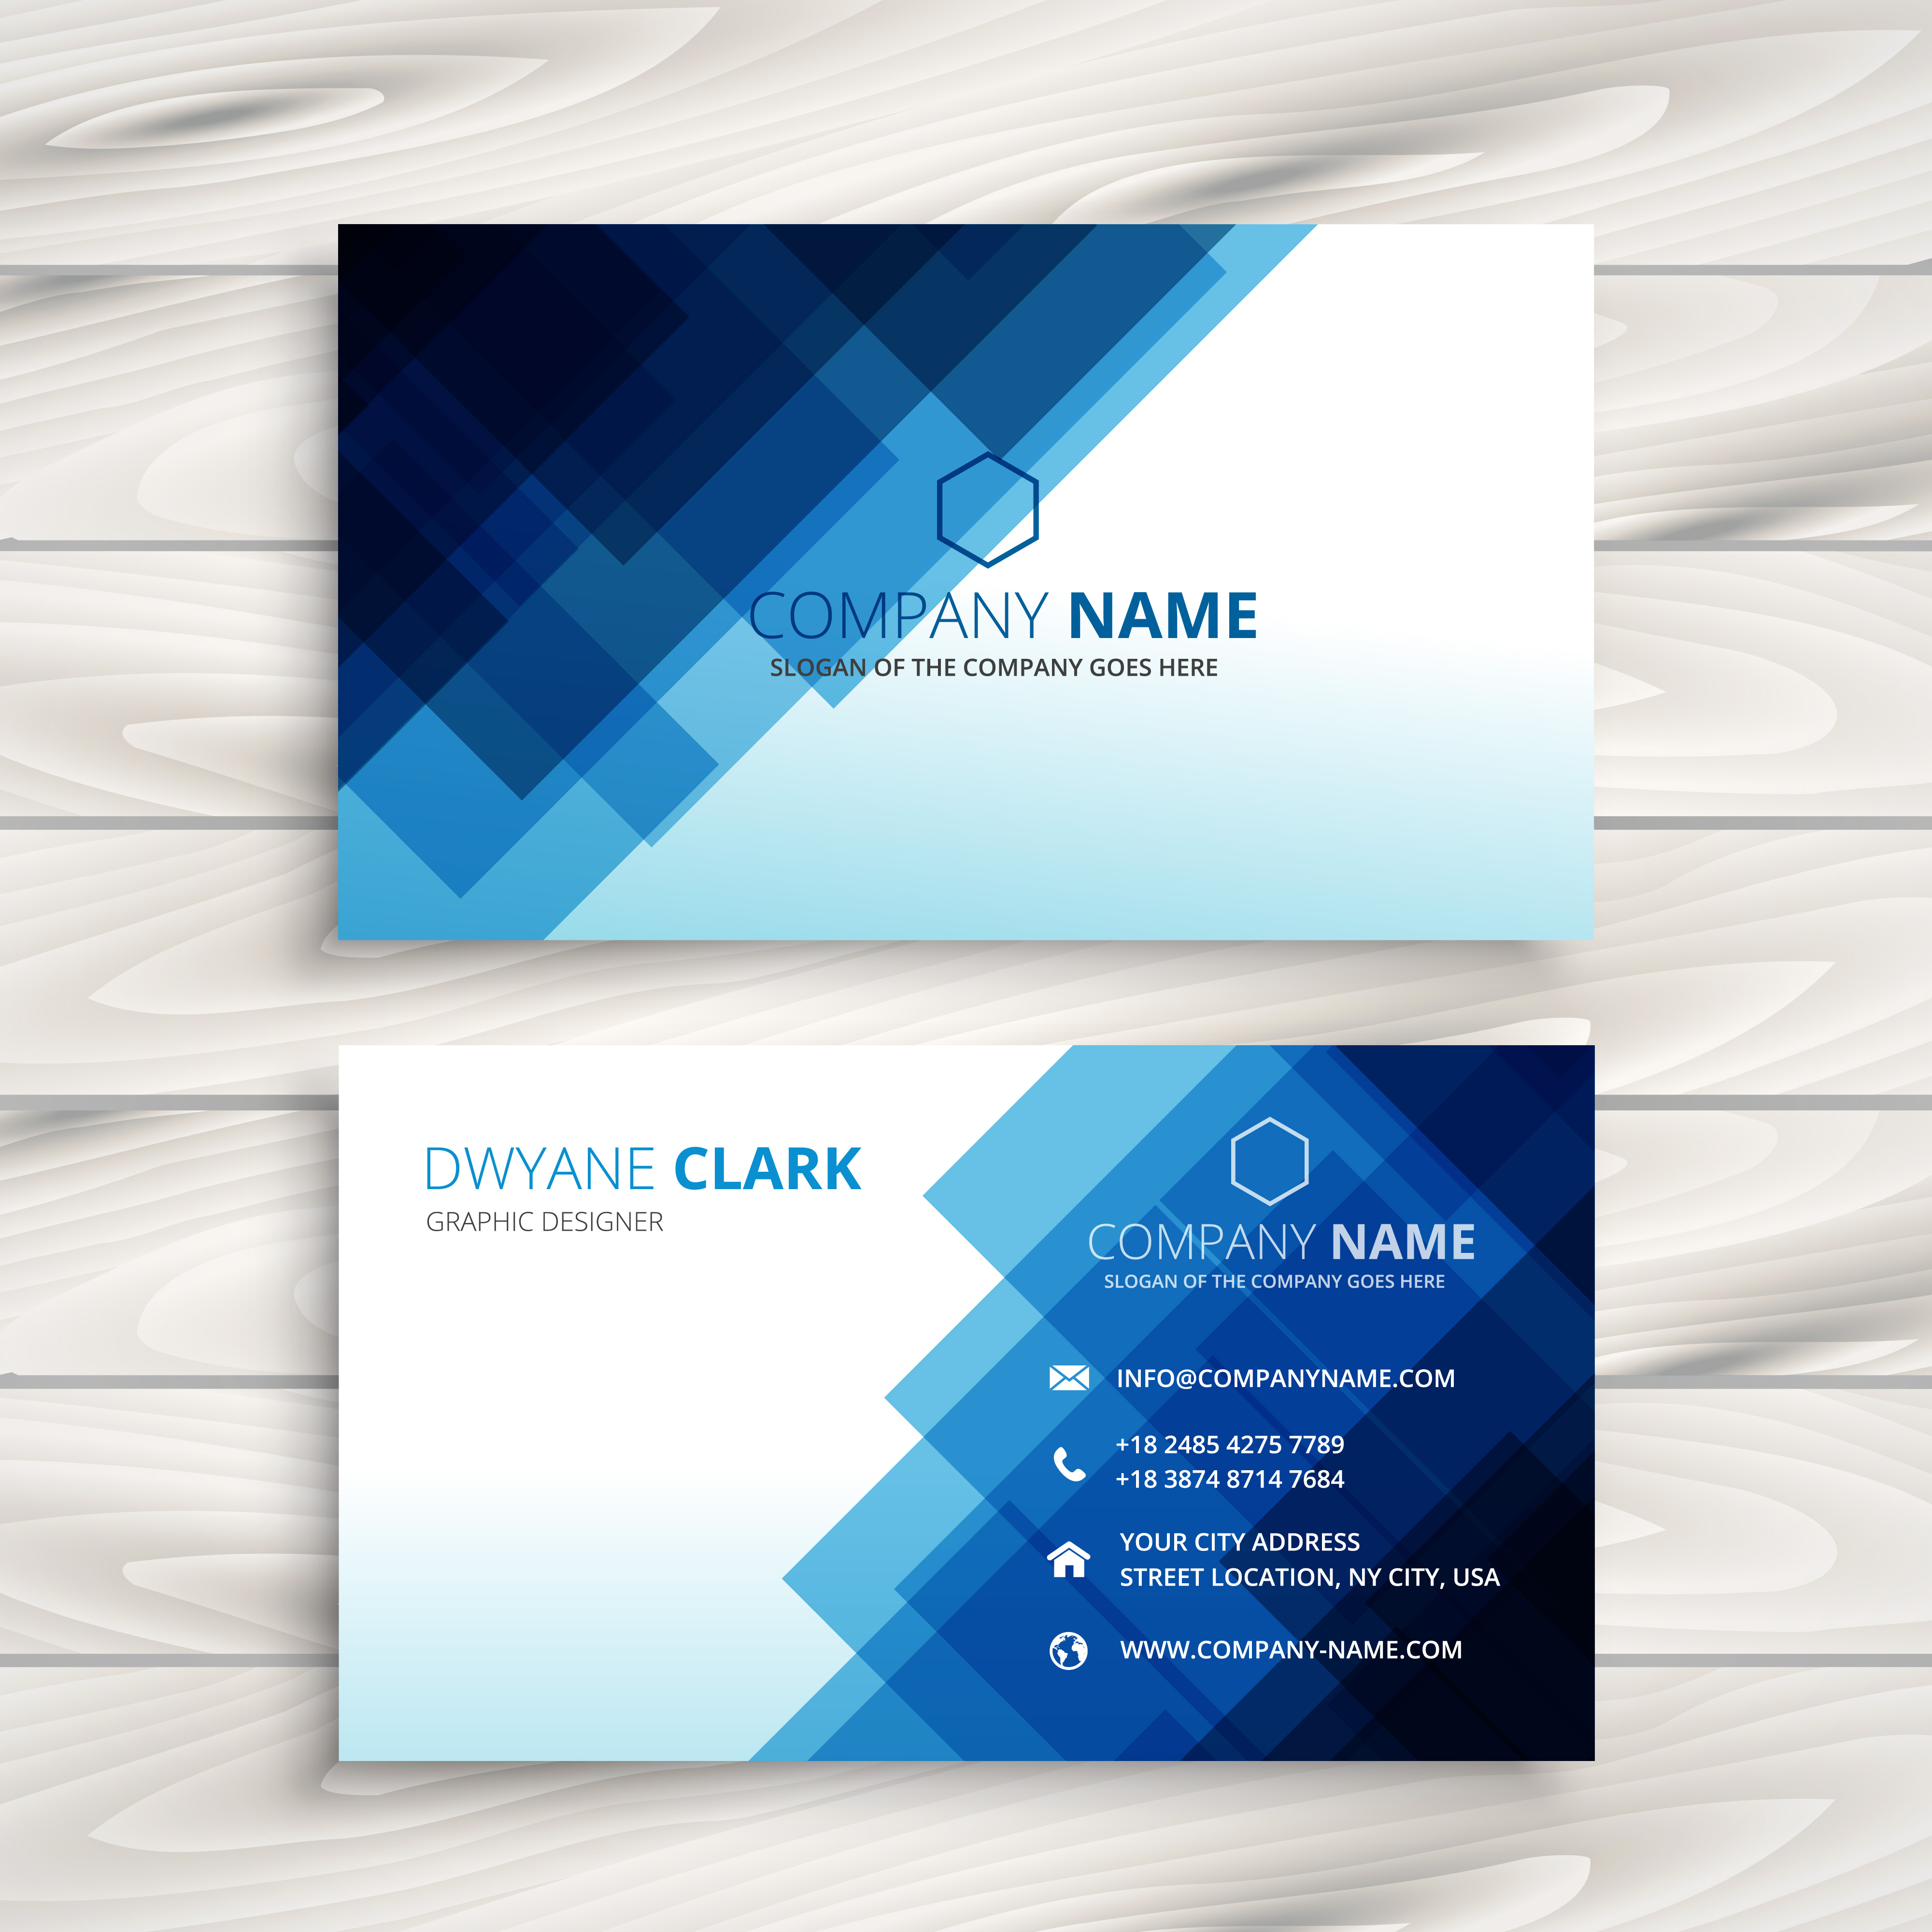 Blue Corporate Stationary Pack By Betty Design: Abstract Blue Business Card Template Vector Design